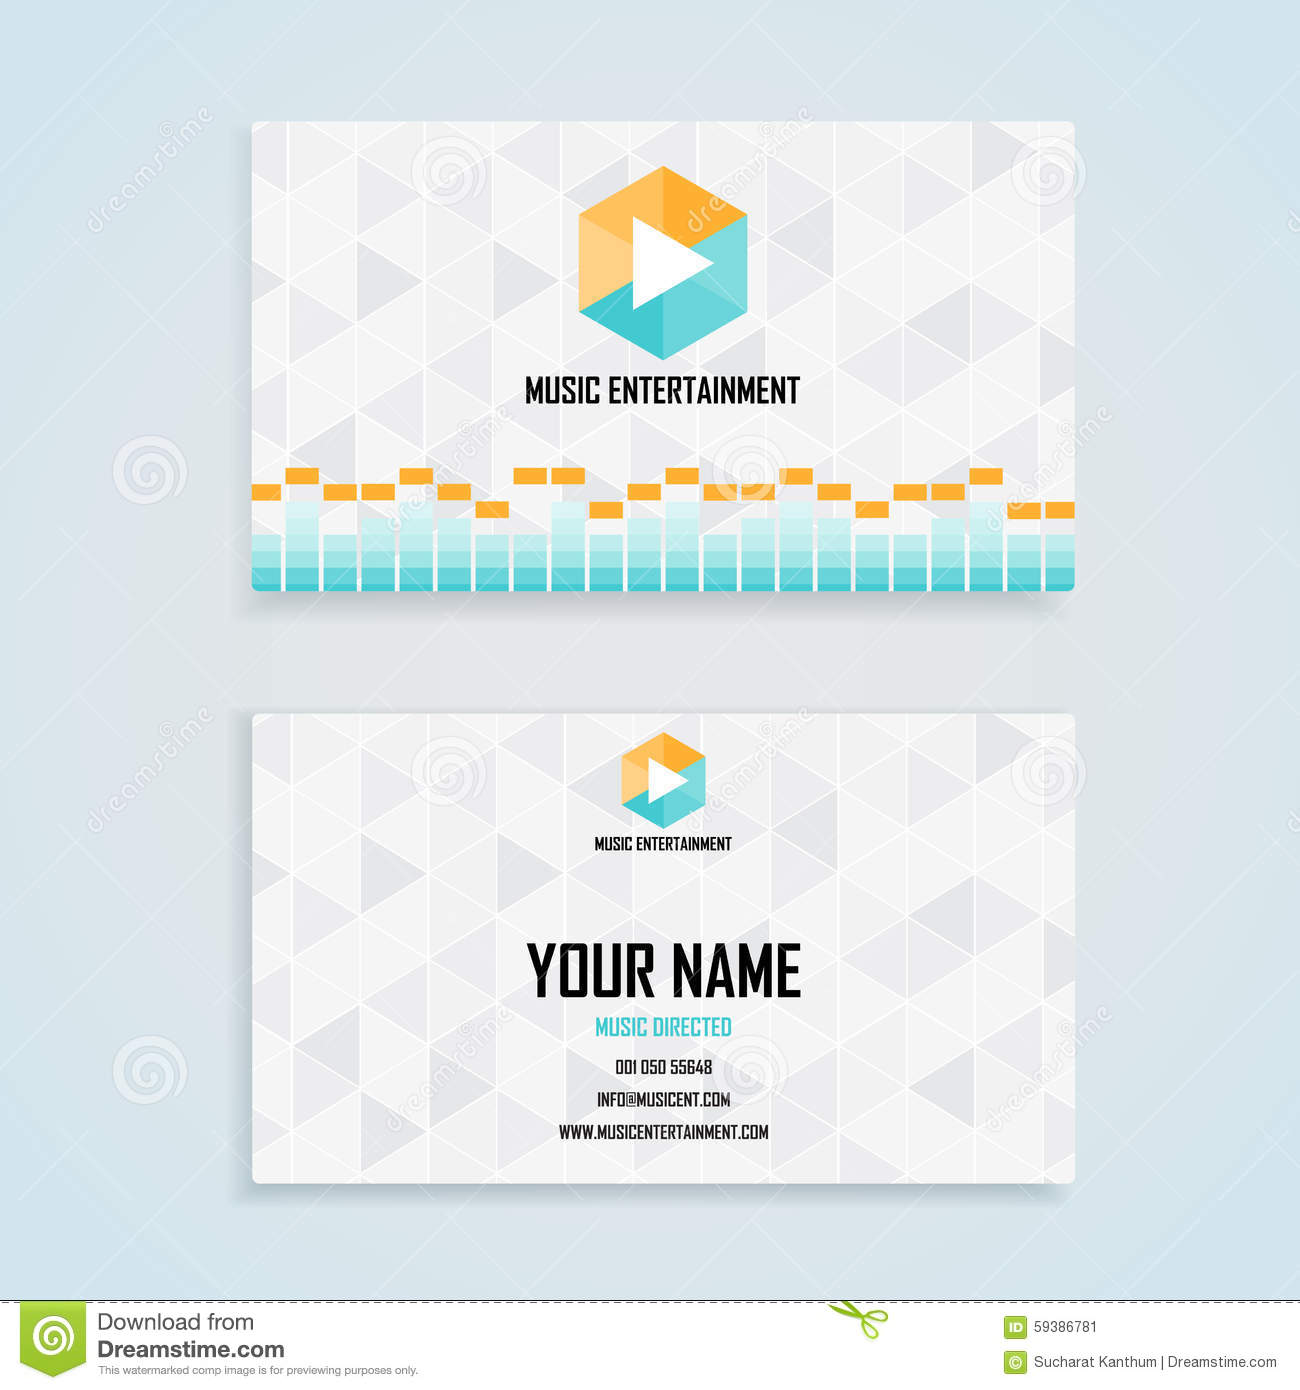 Excellent 1 Page Resumes Small 10 Envelope Template Indesign Clean 100 Day Plan Template 10x13 Envelope Template Young 16x20 Collage Template Red18th Birthday Invitation Templates Music Company Name Card Template Stock Vector   Image: 59386781